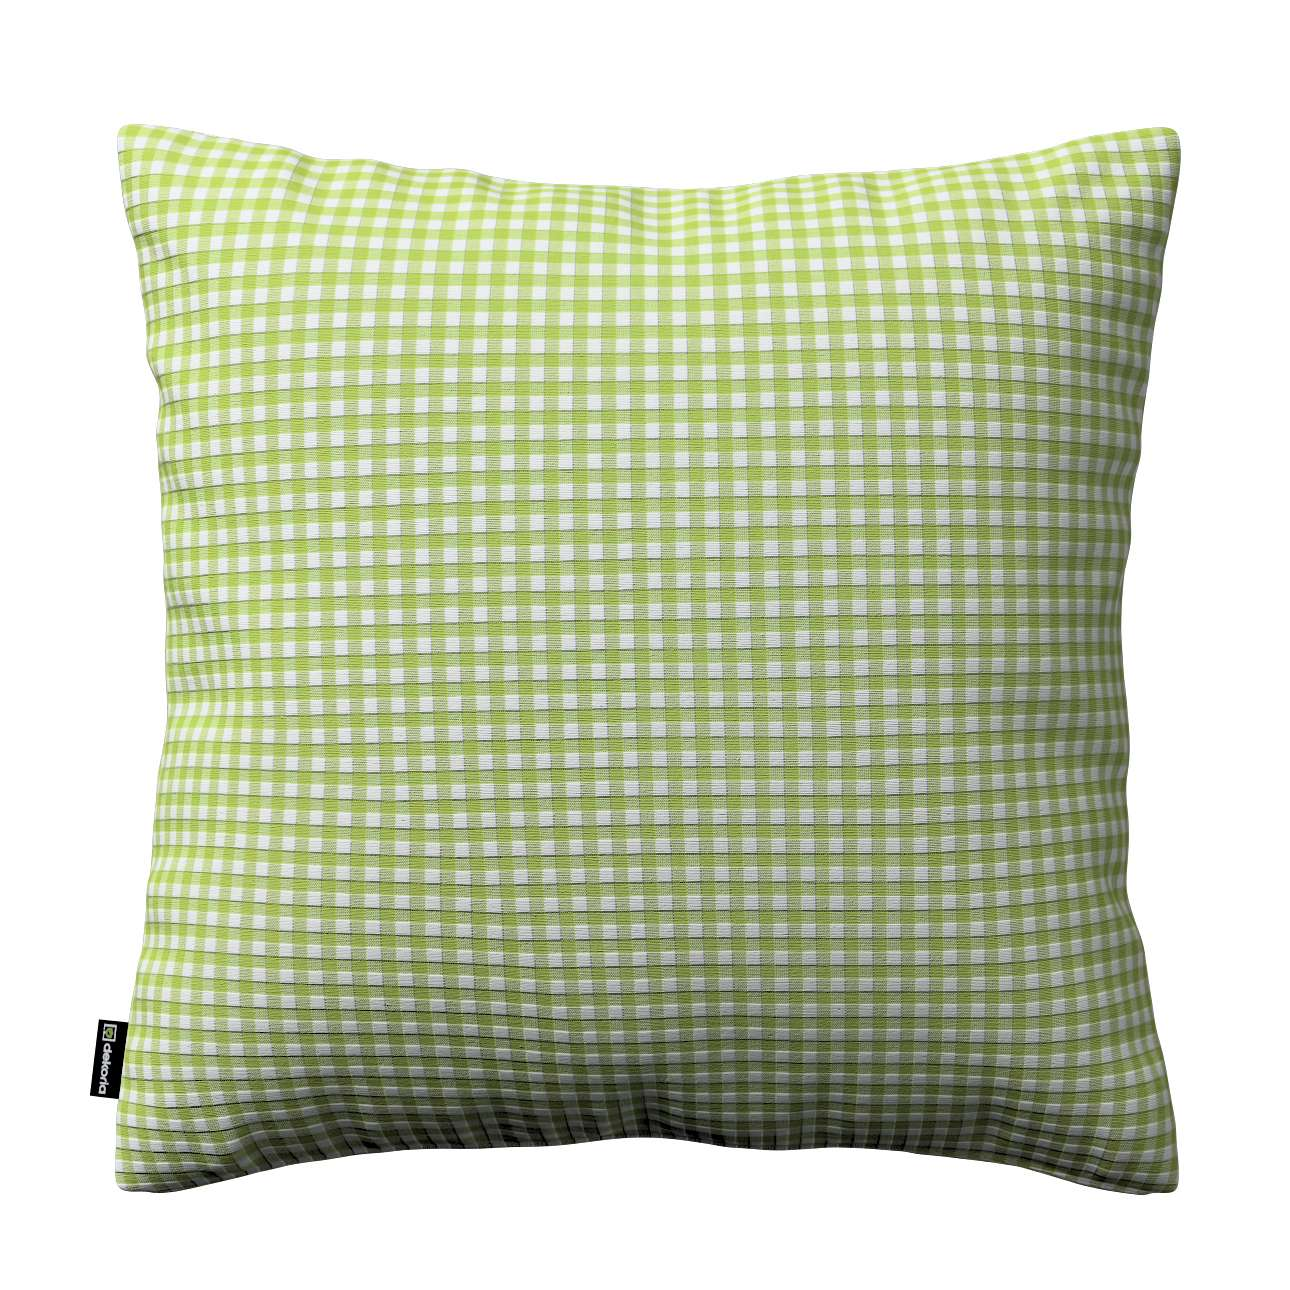 Kinga cushion cover 43 × 43 cm (17 × 17 inch) in collection Quadro, fabric: 136-33